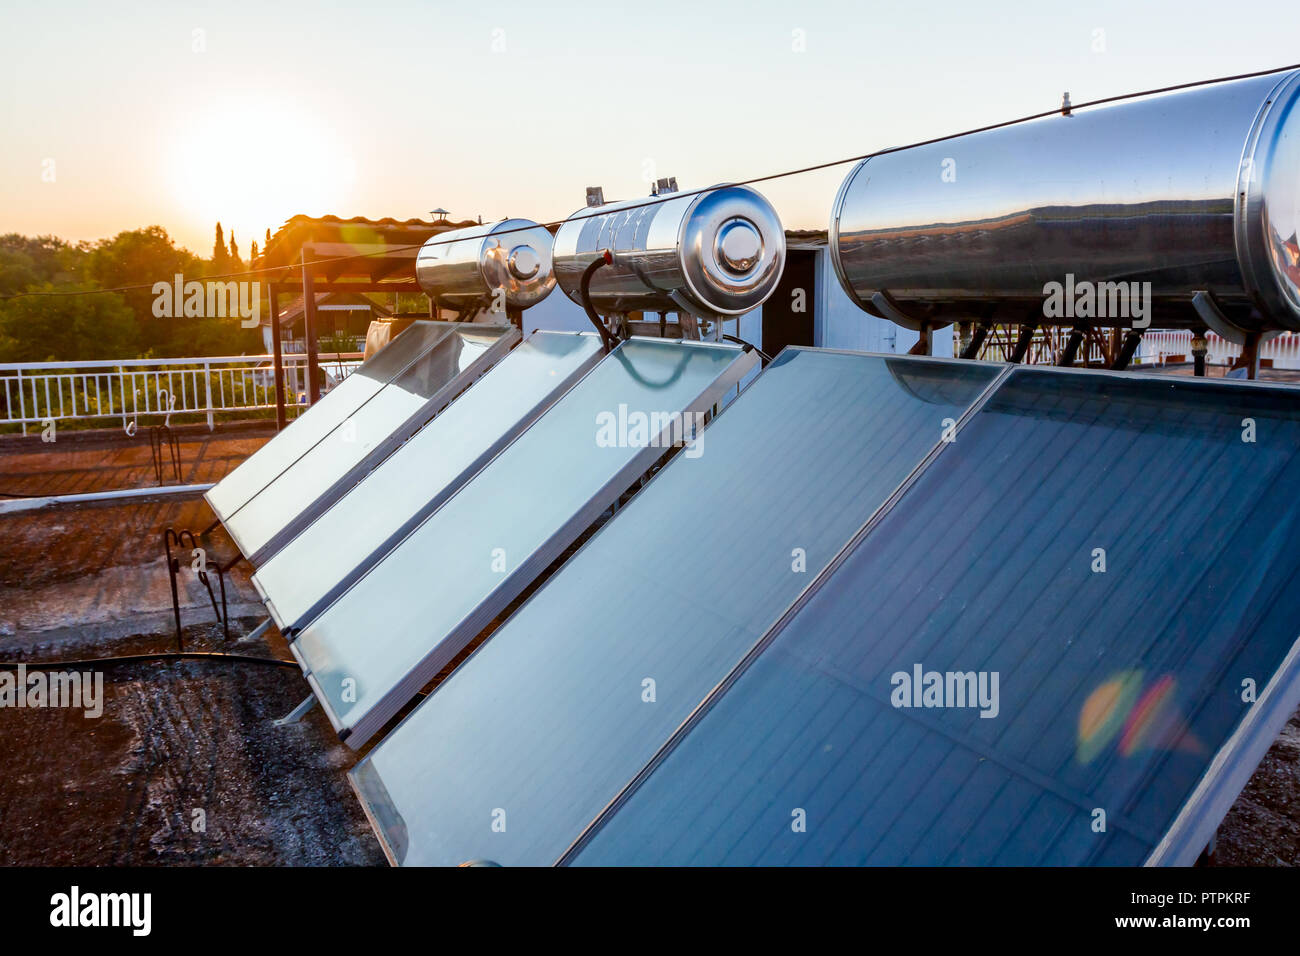 Water Tank House Stock Photos & Water Tank House Stock Images - Alamy